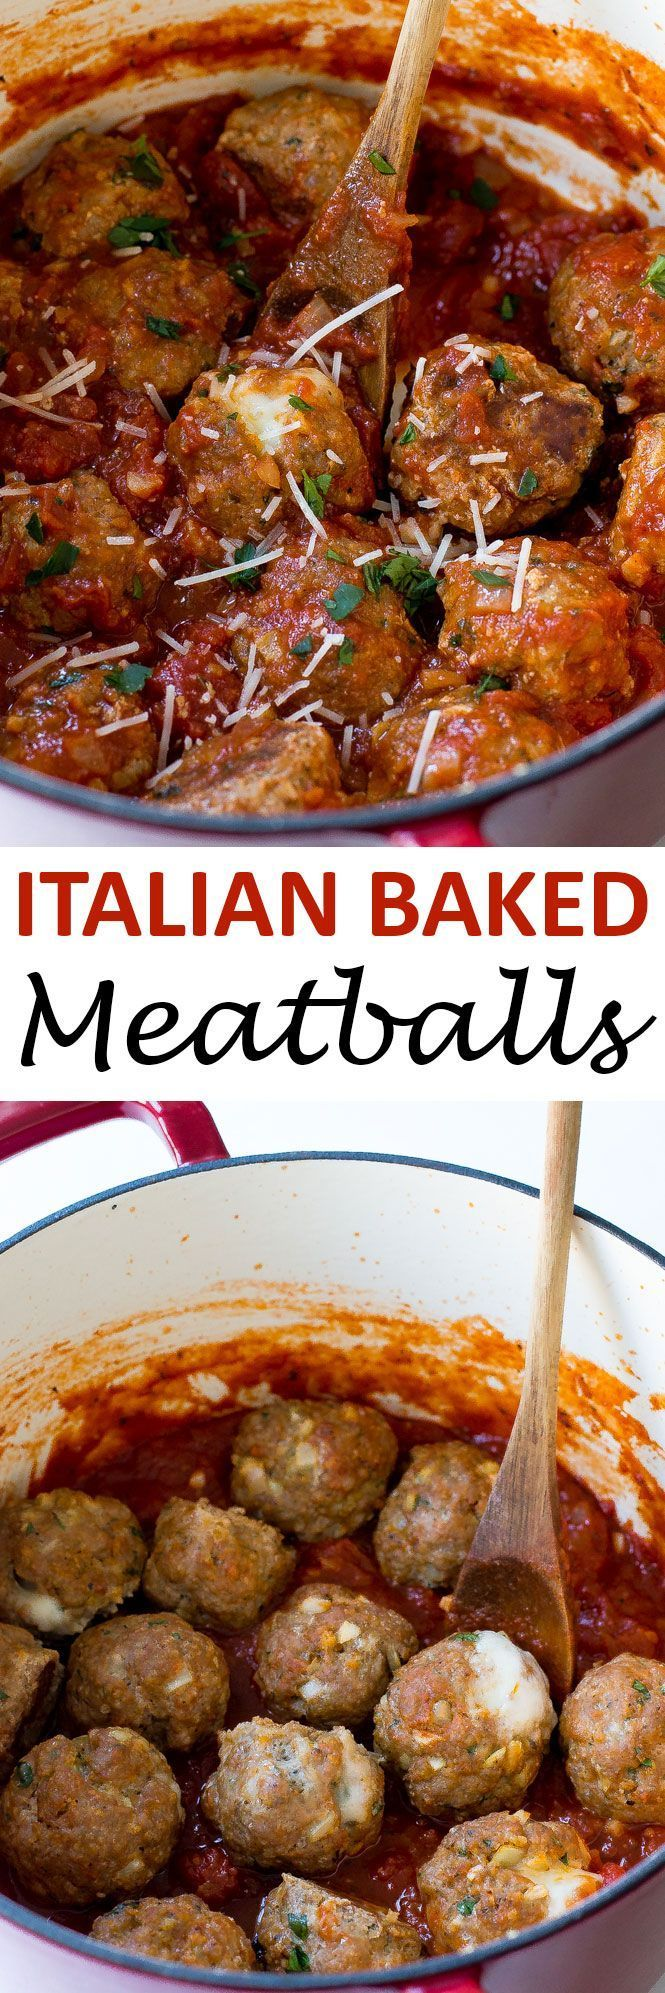 Baked Turkey Pesto Meatballs stuffed with mozzarella cheese! These meatballs are amazing and loaded with tons of flavor! | chefsavvy.com #recipe #Italian #baked #meatballs #turkey #pesto